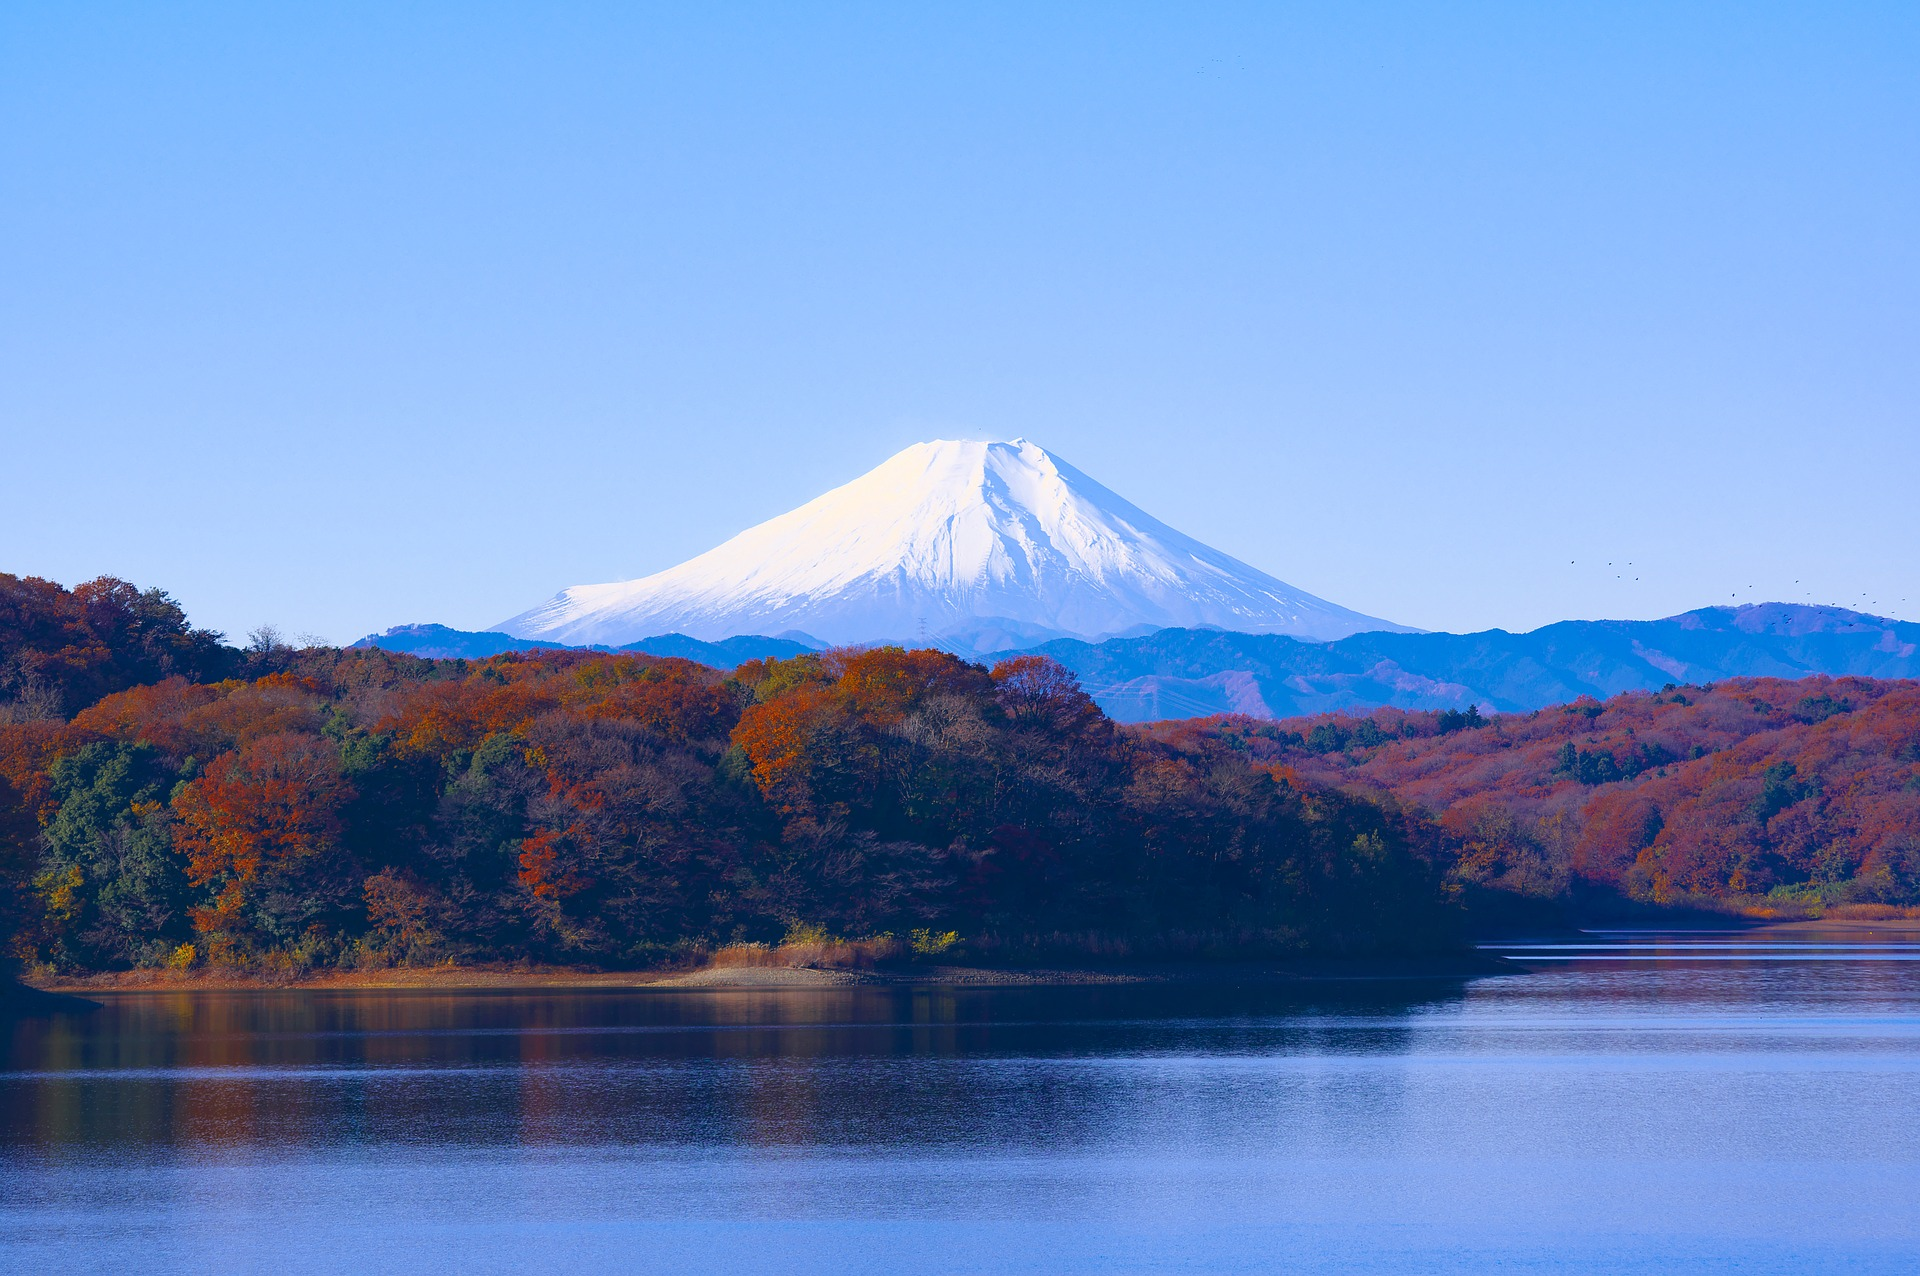 Sayama Lake, Japan, with Mount Fuji in background